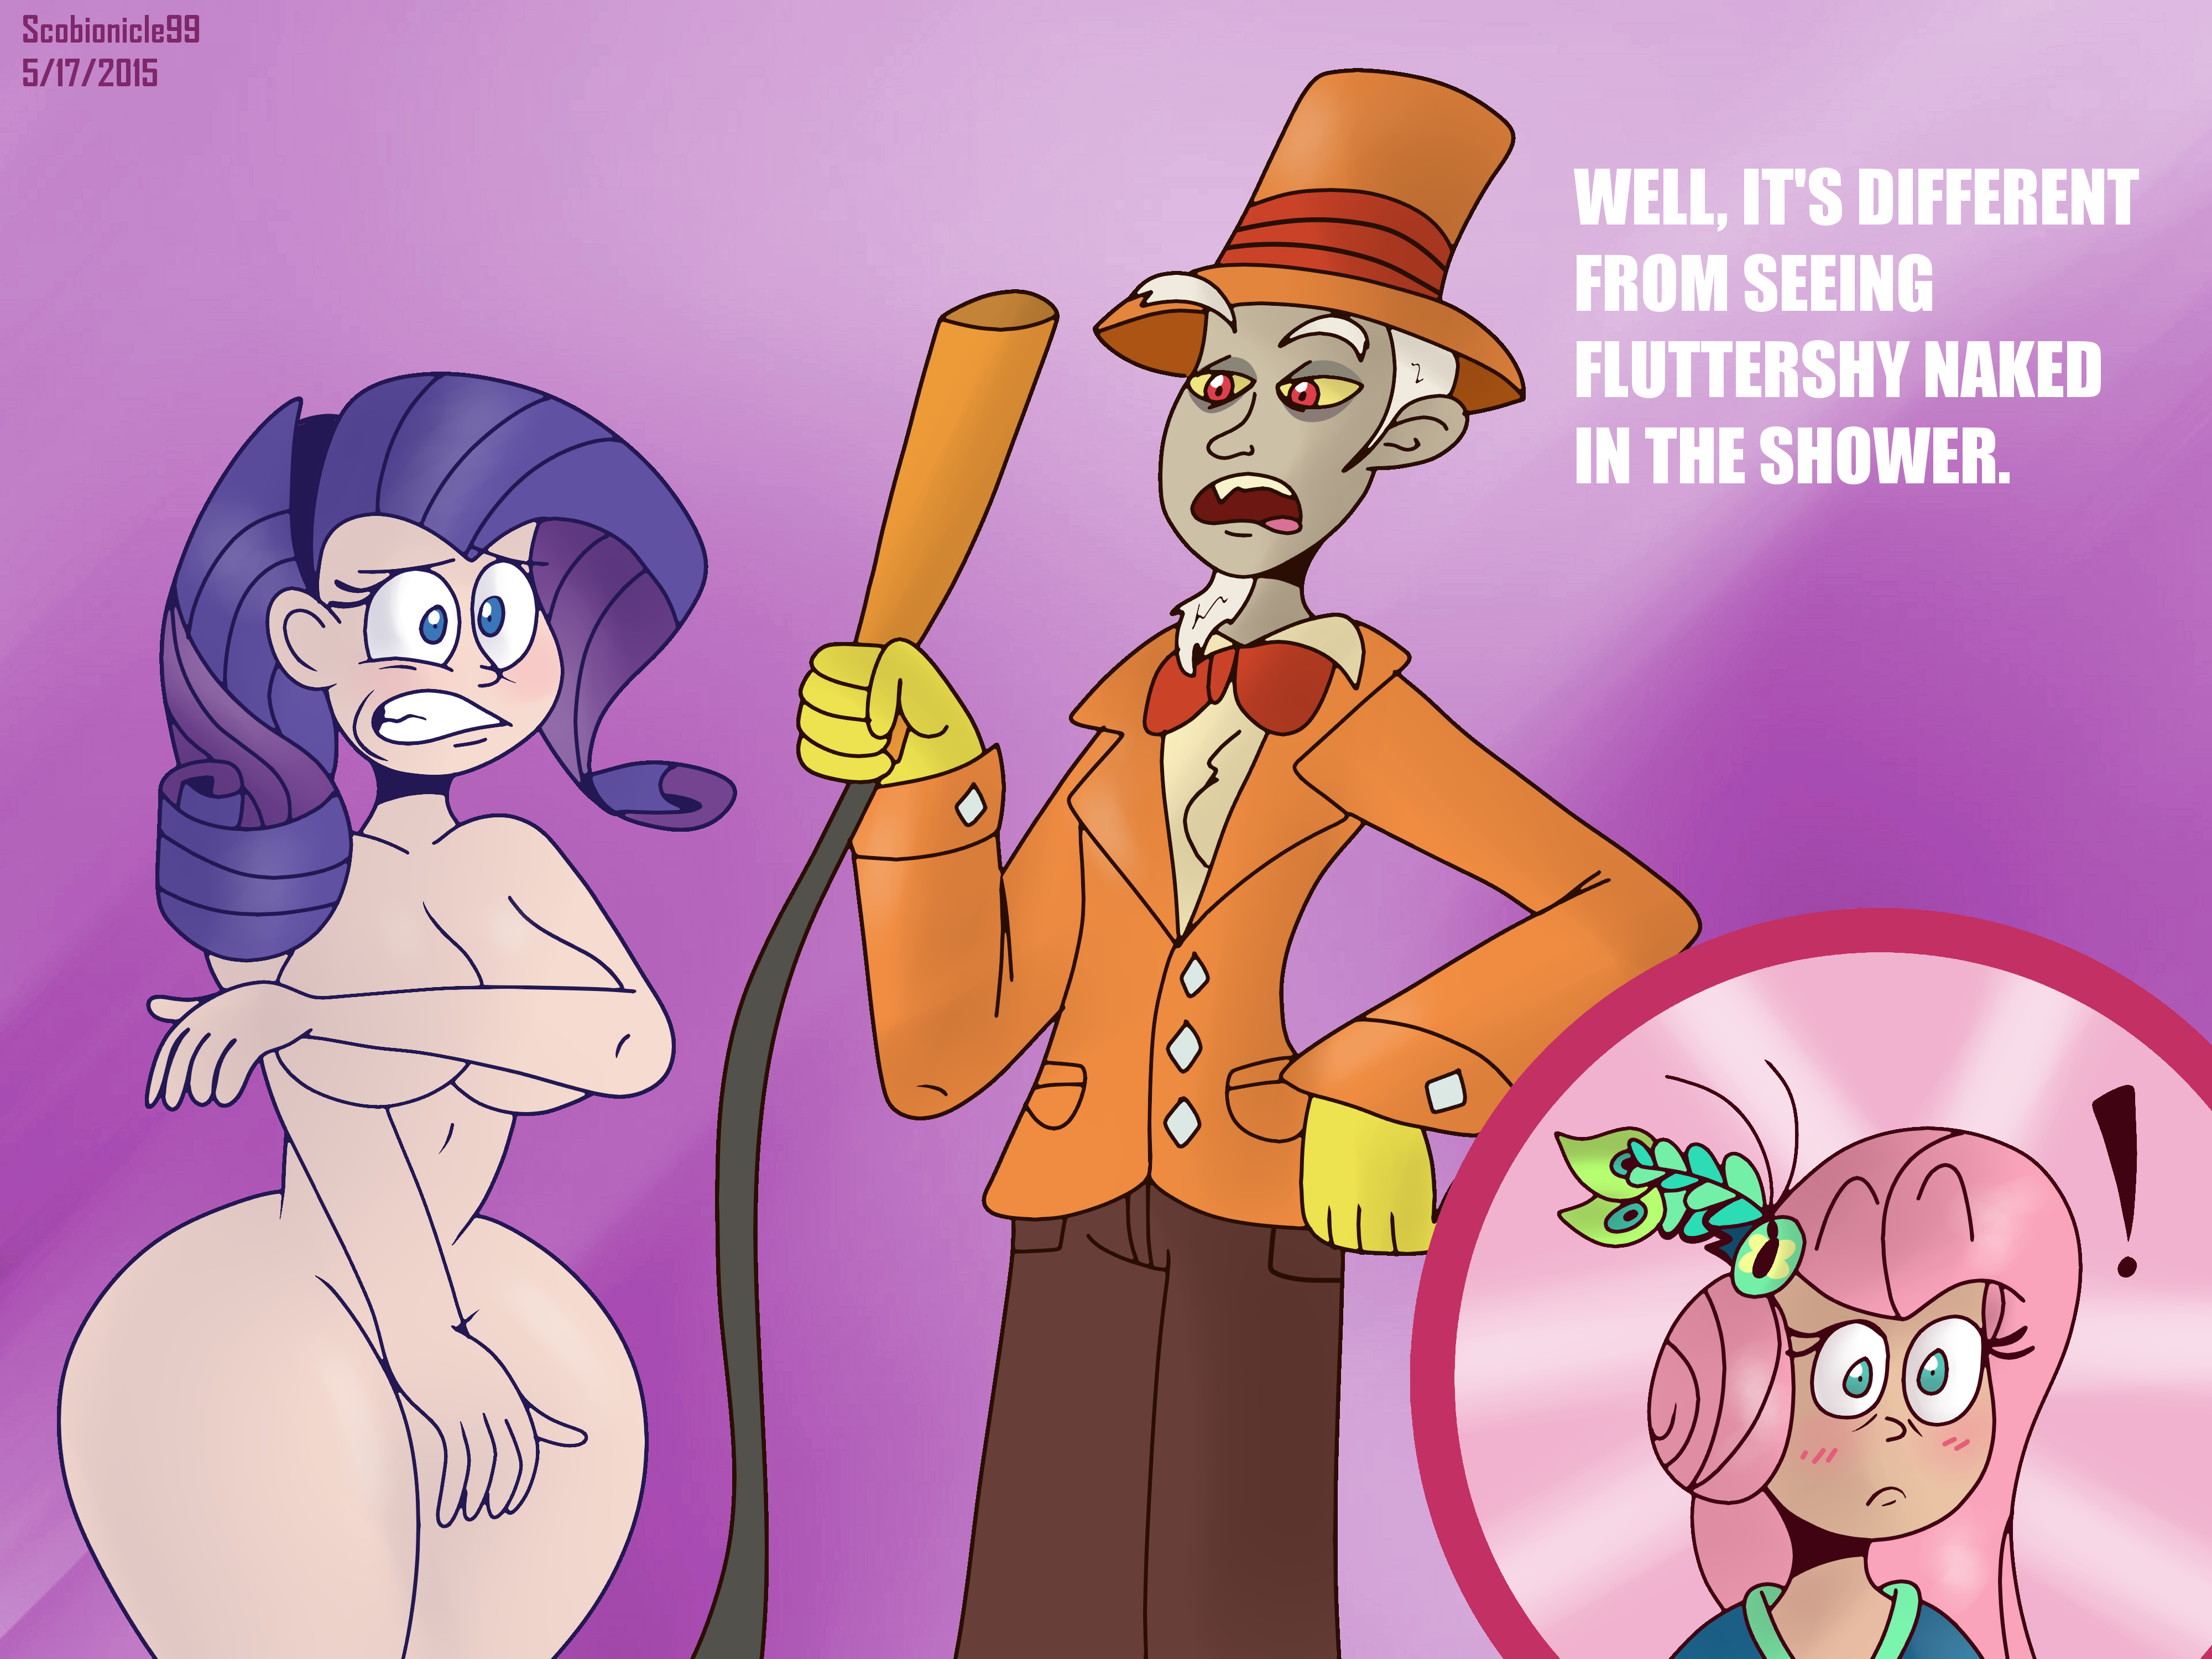 That's my little pony human naked sex criticising